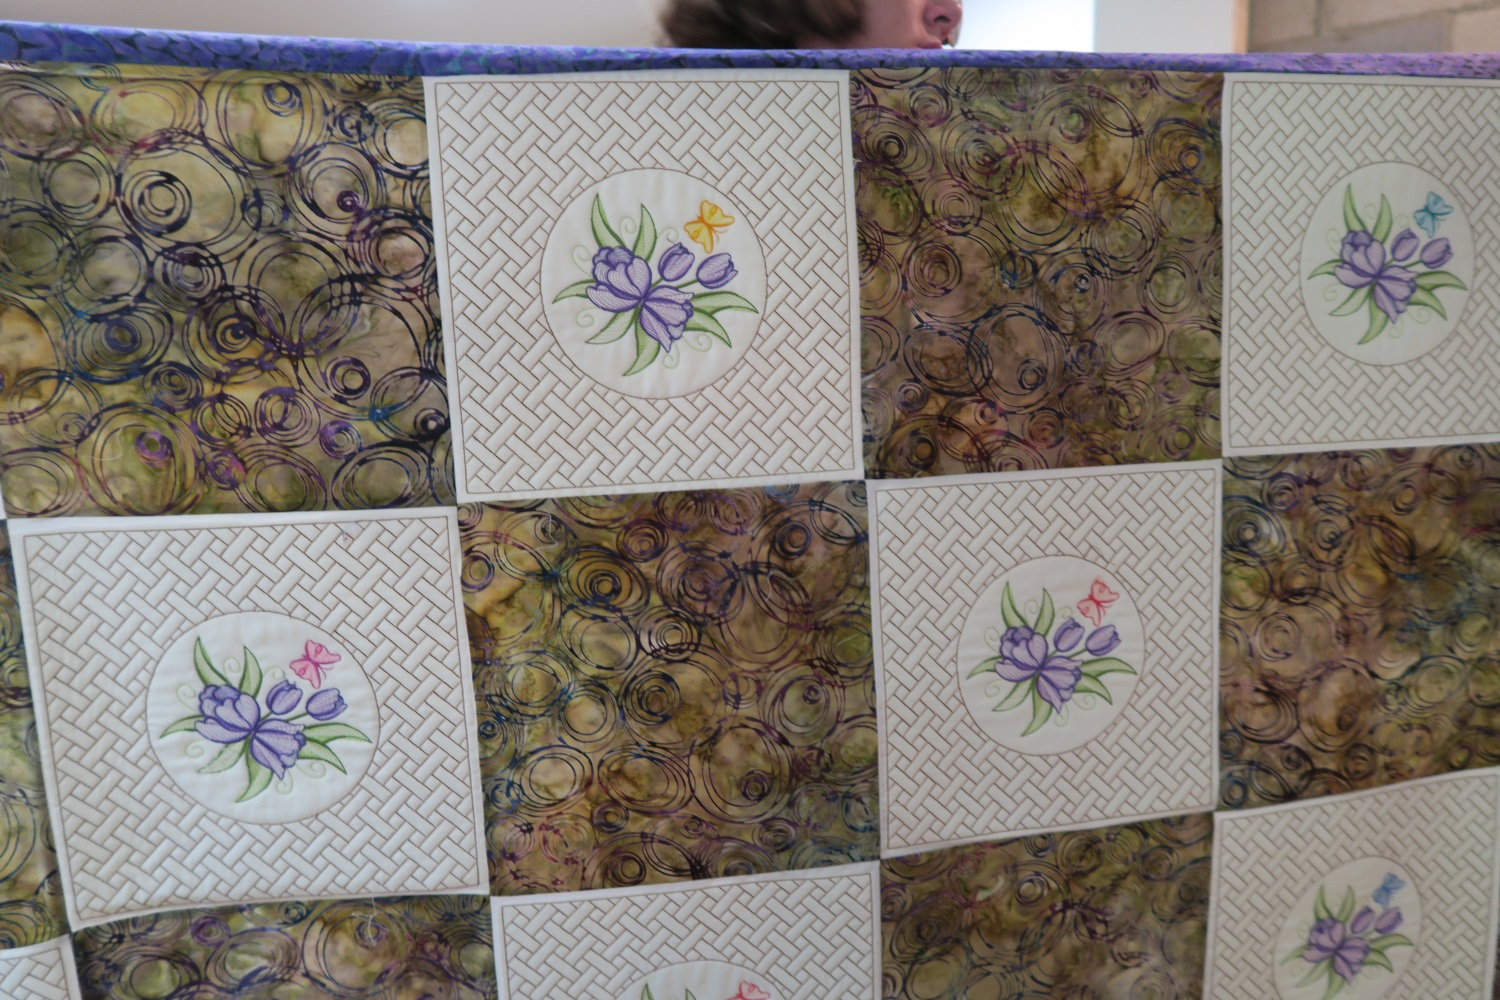 This is a quilt April is making for her mother. The embroidery is delightful!